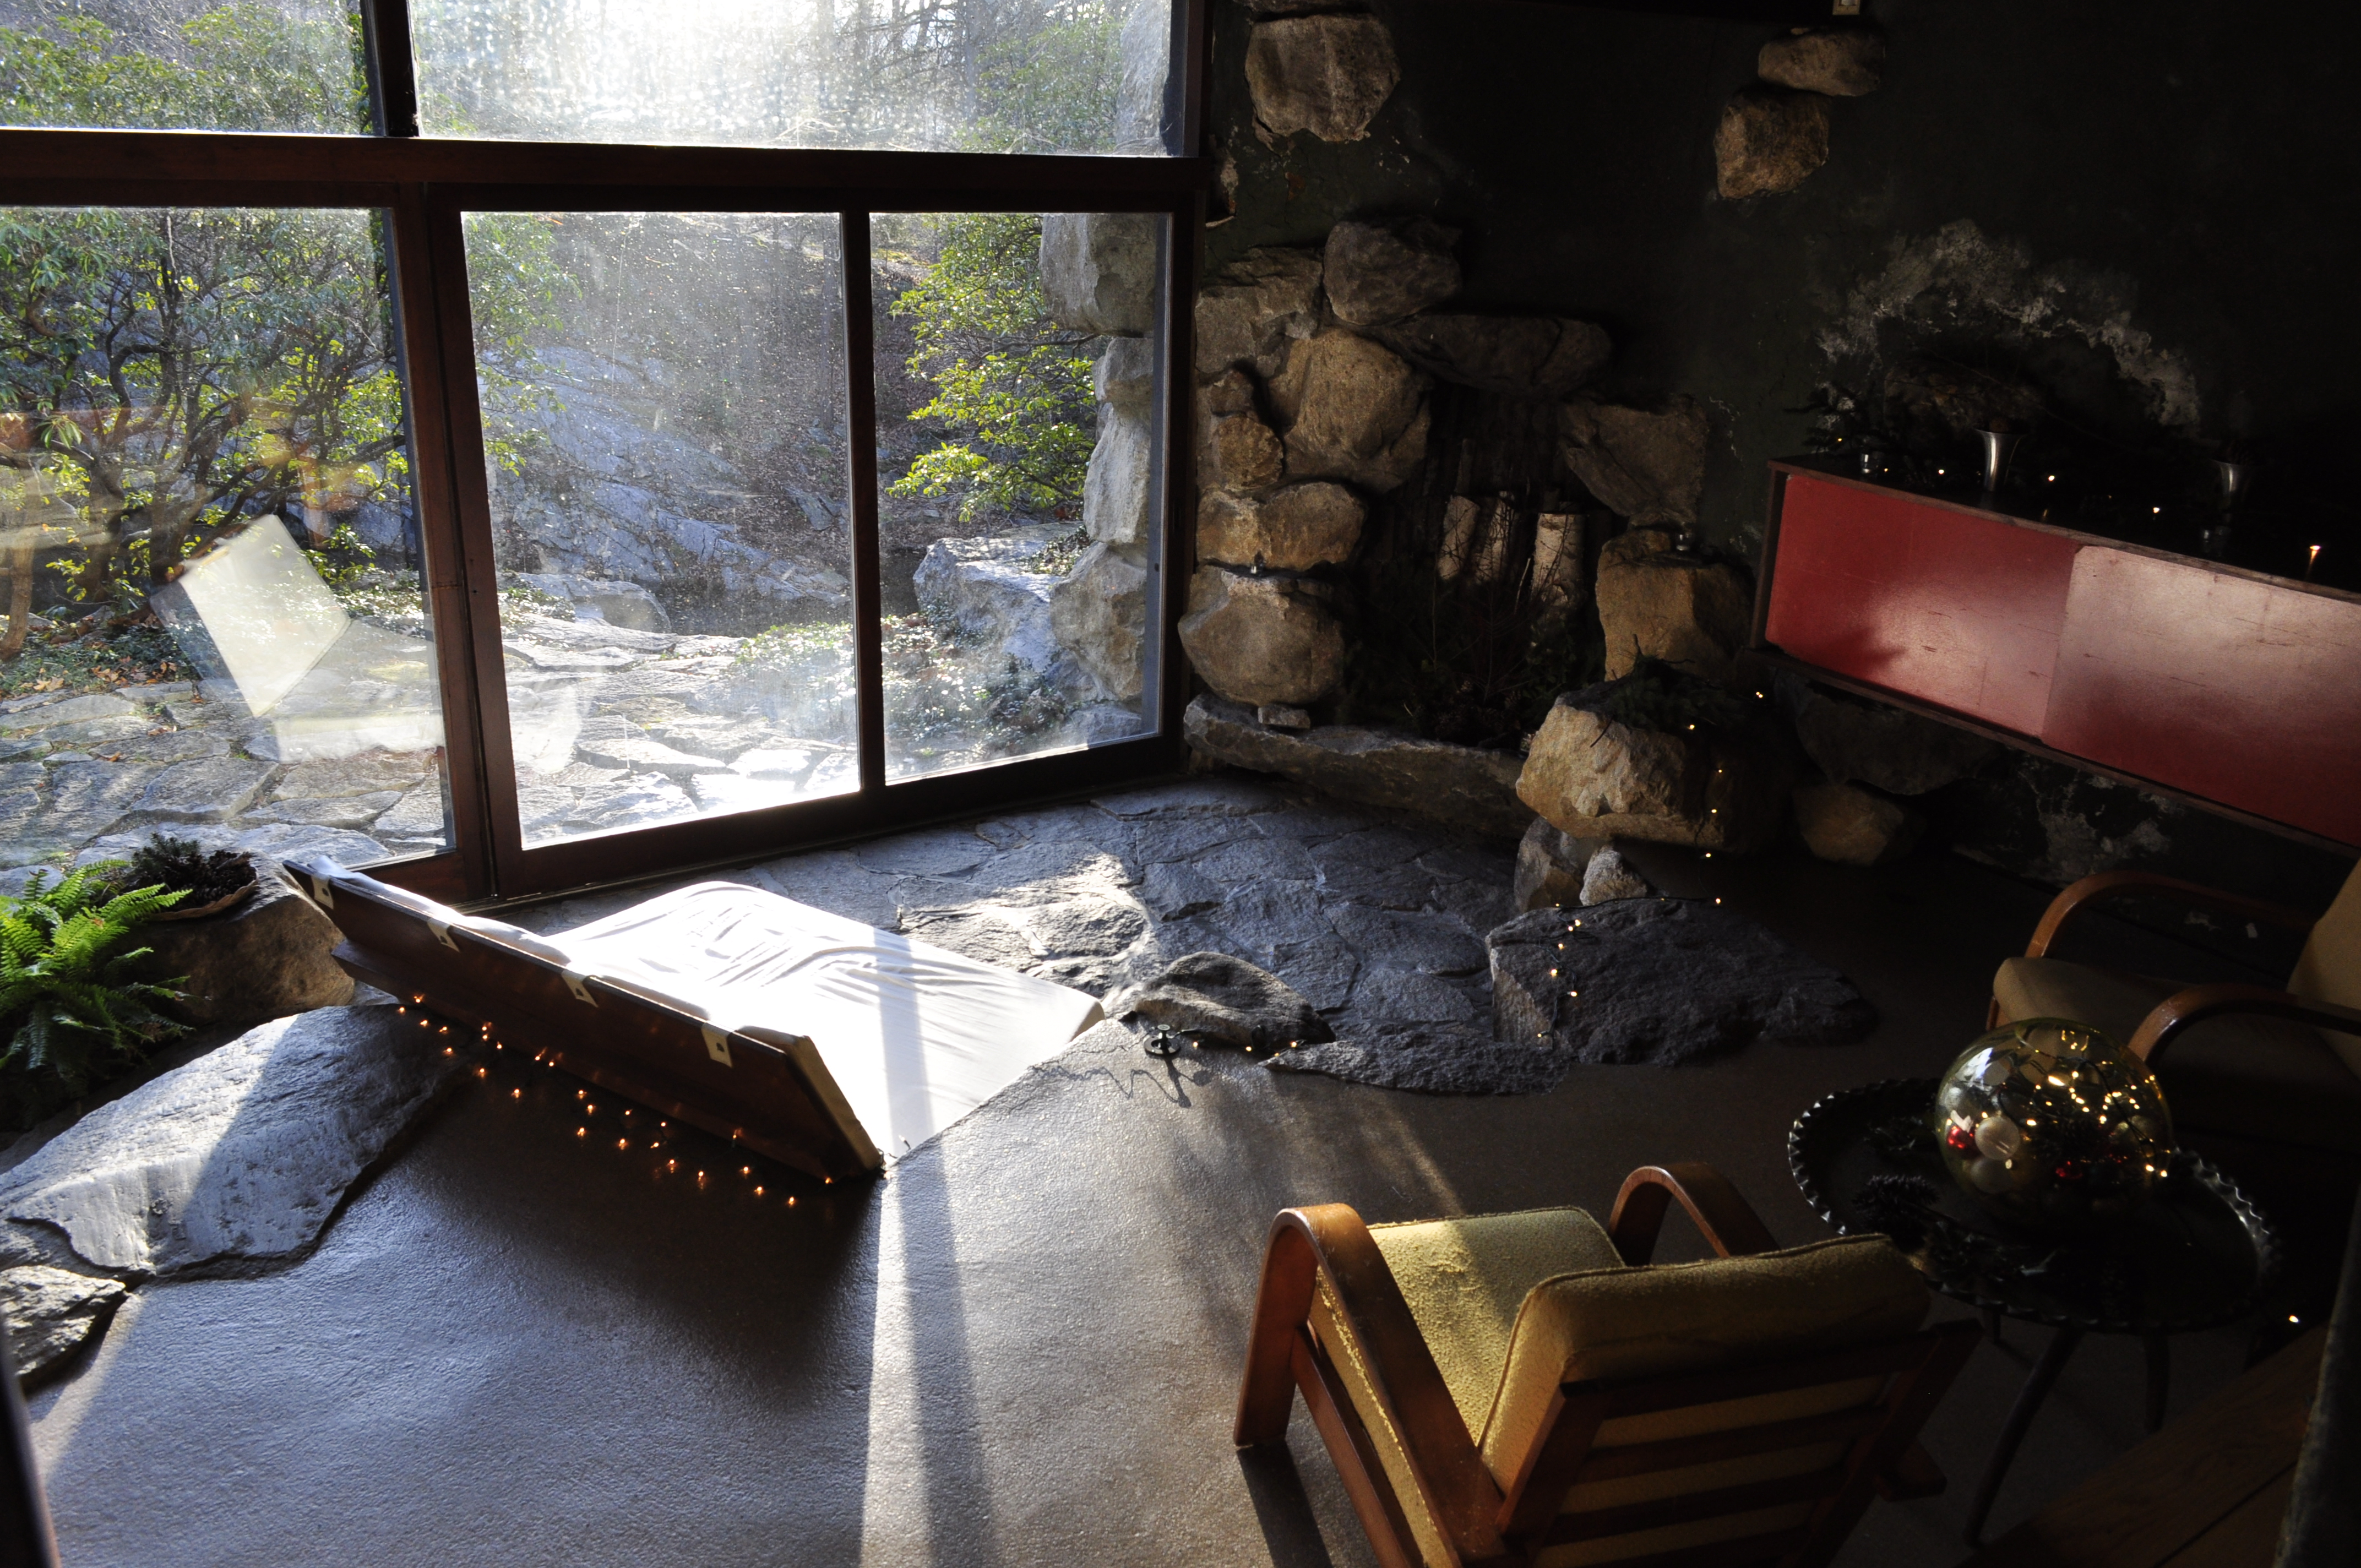 The sitting area with boulders inset into the walls.